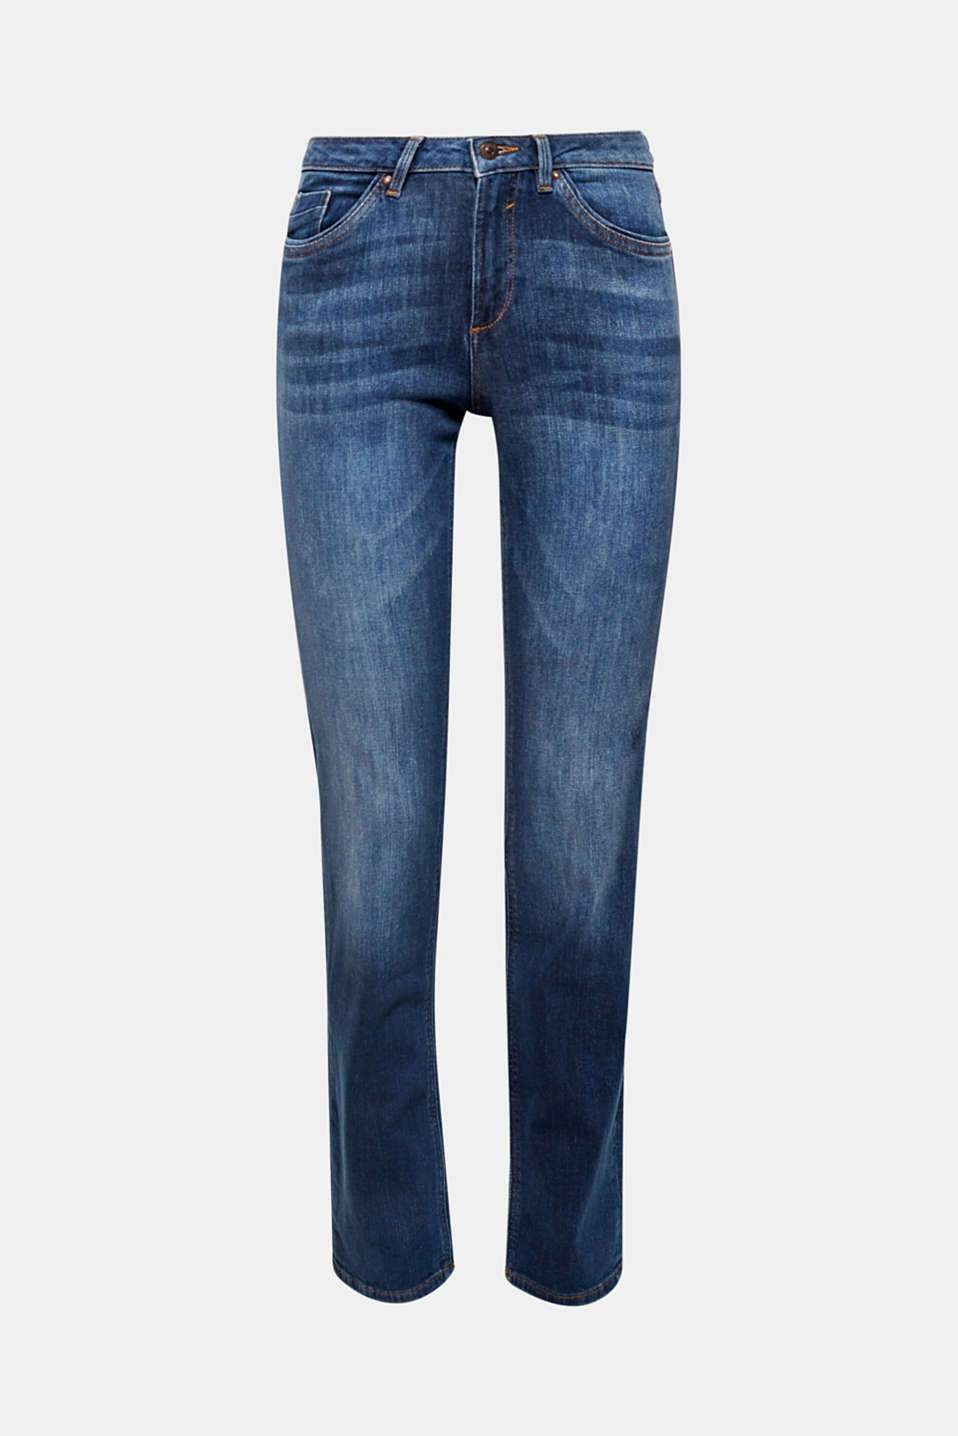 The button-fastening flap pockets on the back give these stretch jeans with a modern garment wash their wow look!